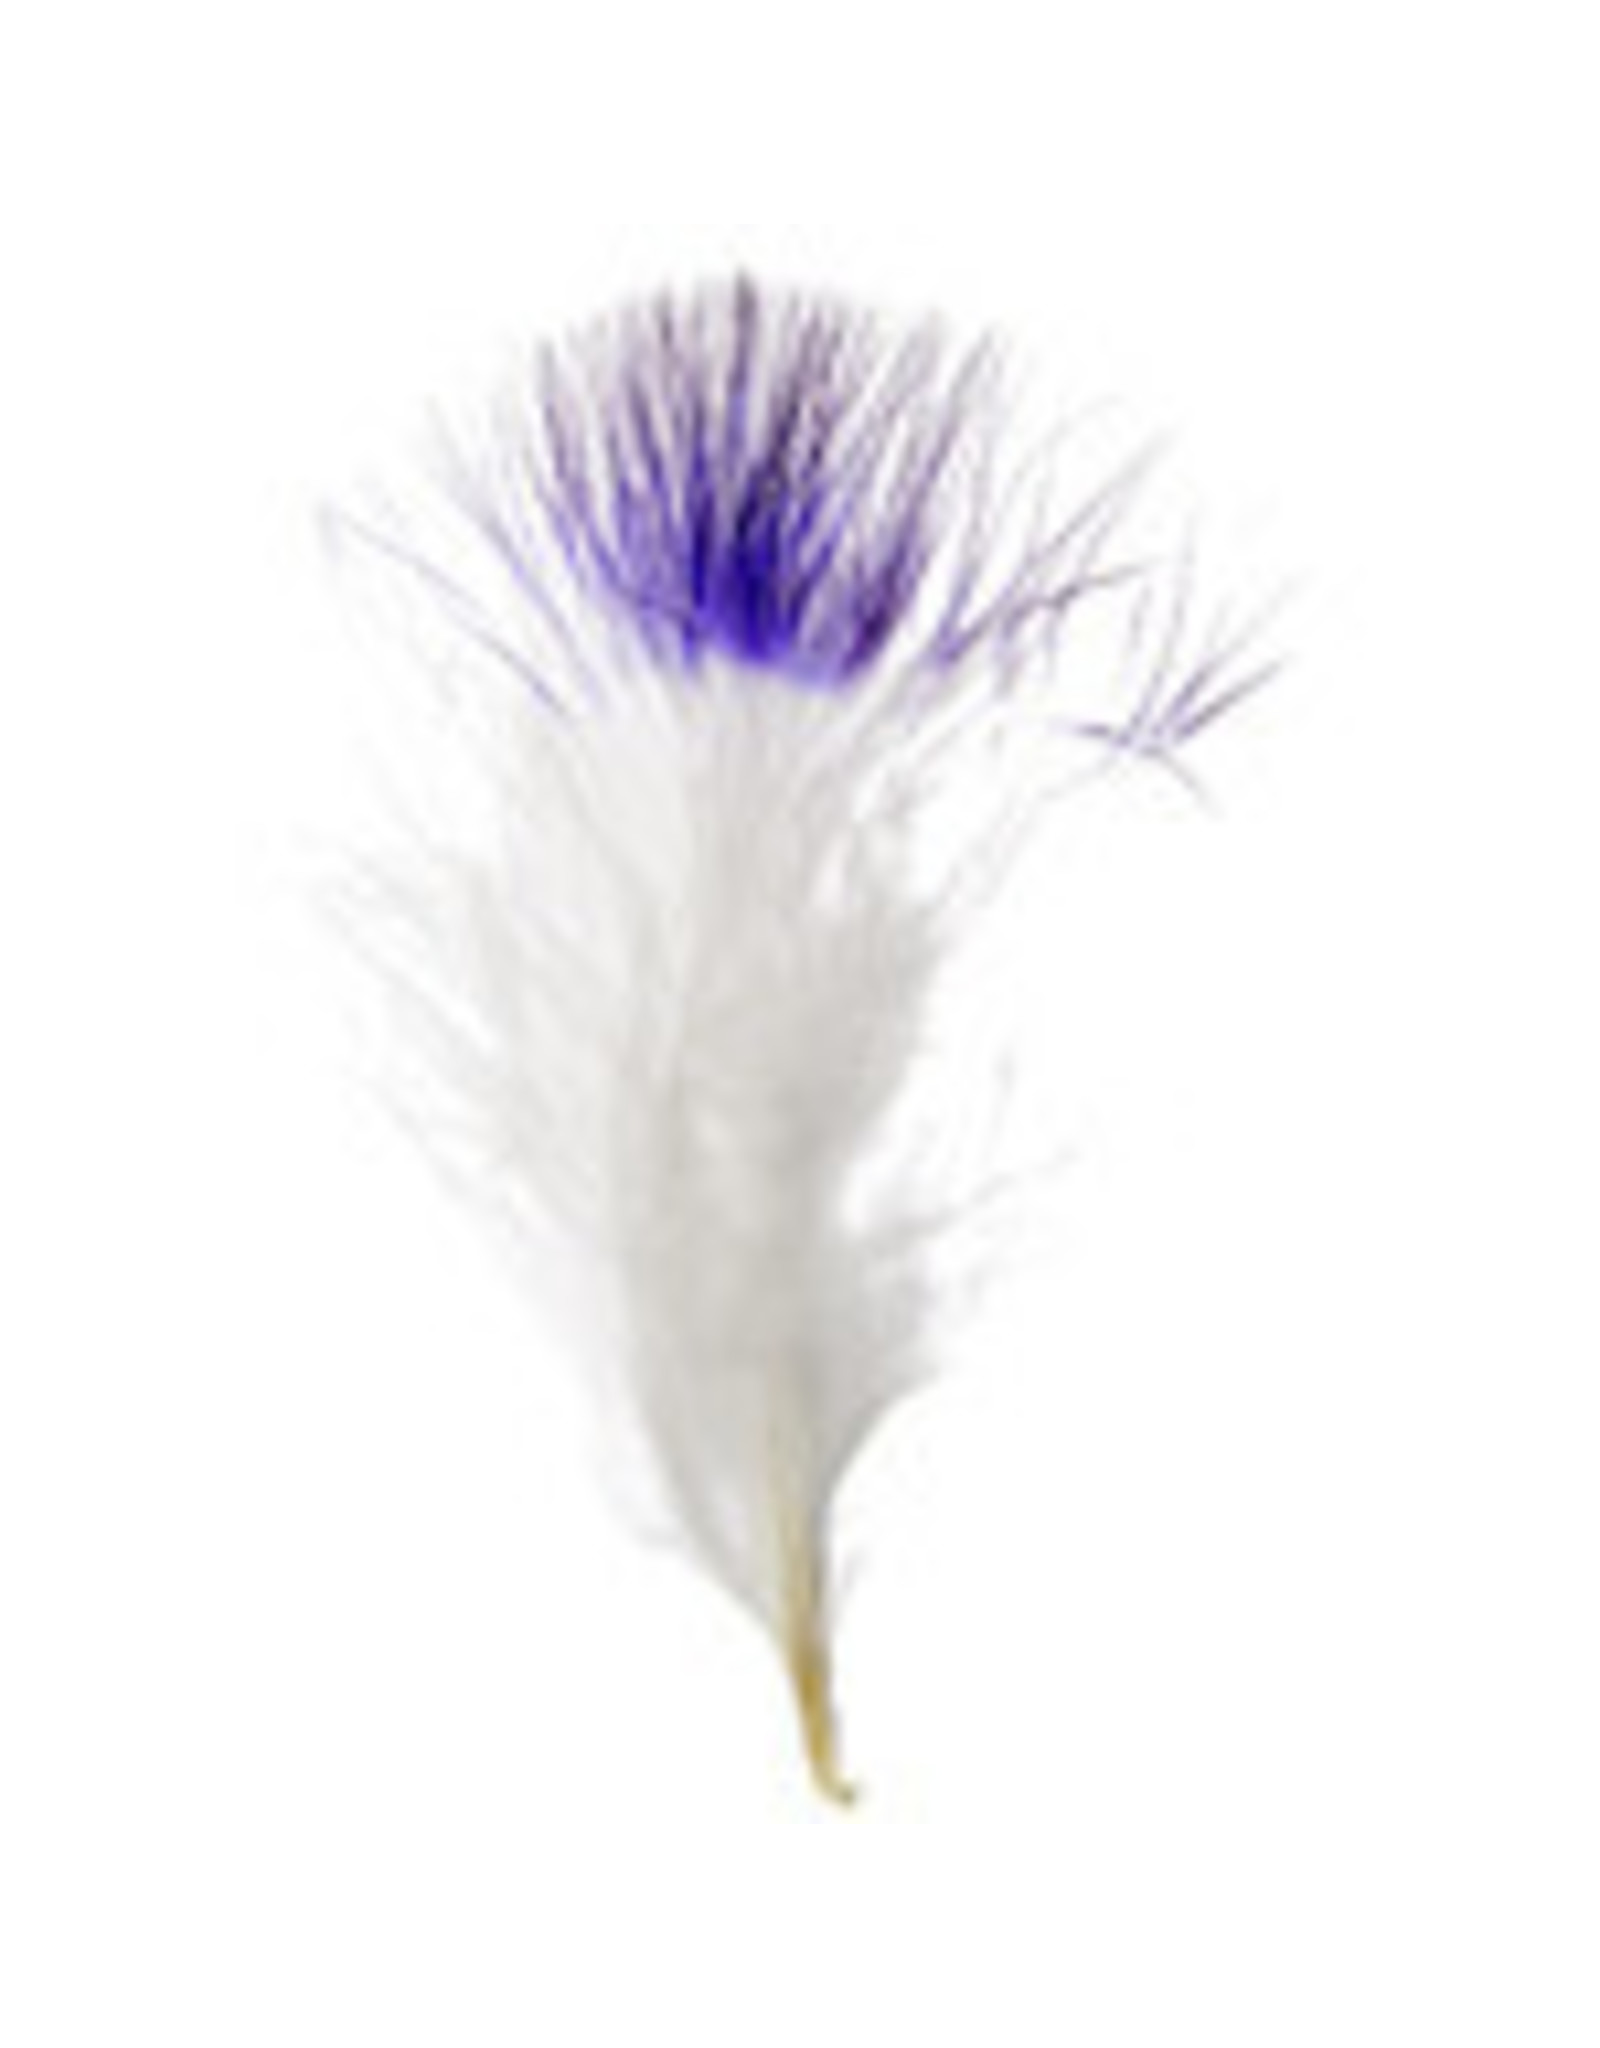 Marabou Feathers 4-6in White Purple Tip  6g